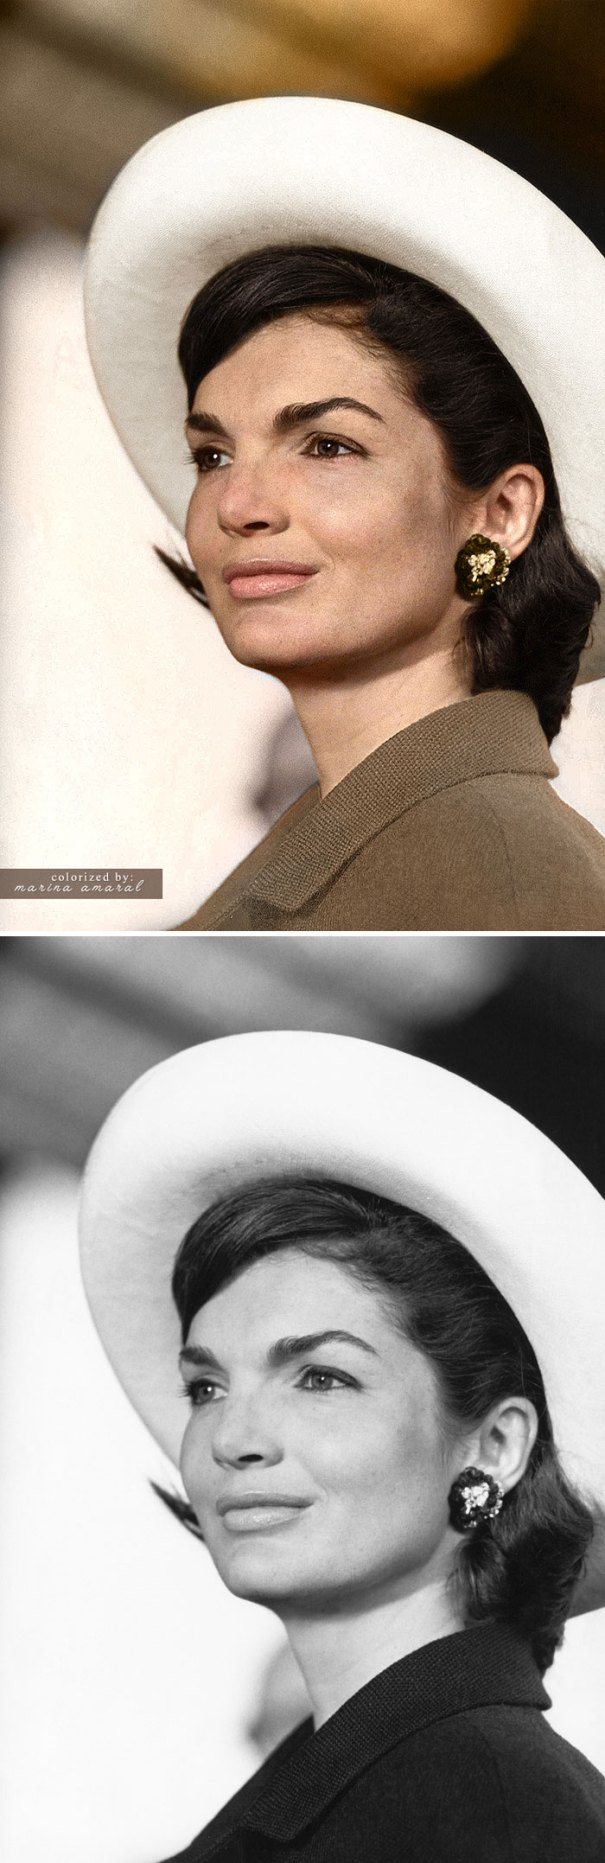 5b6d3b919cd3c-colorized-historic-photos-marina-amaral-50-5b6adf96e3edb__700 This Artist Colorizes Old Black & White Photos, And They Will Change The Way People Imagine History Photography Random